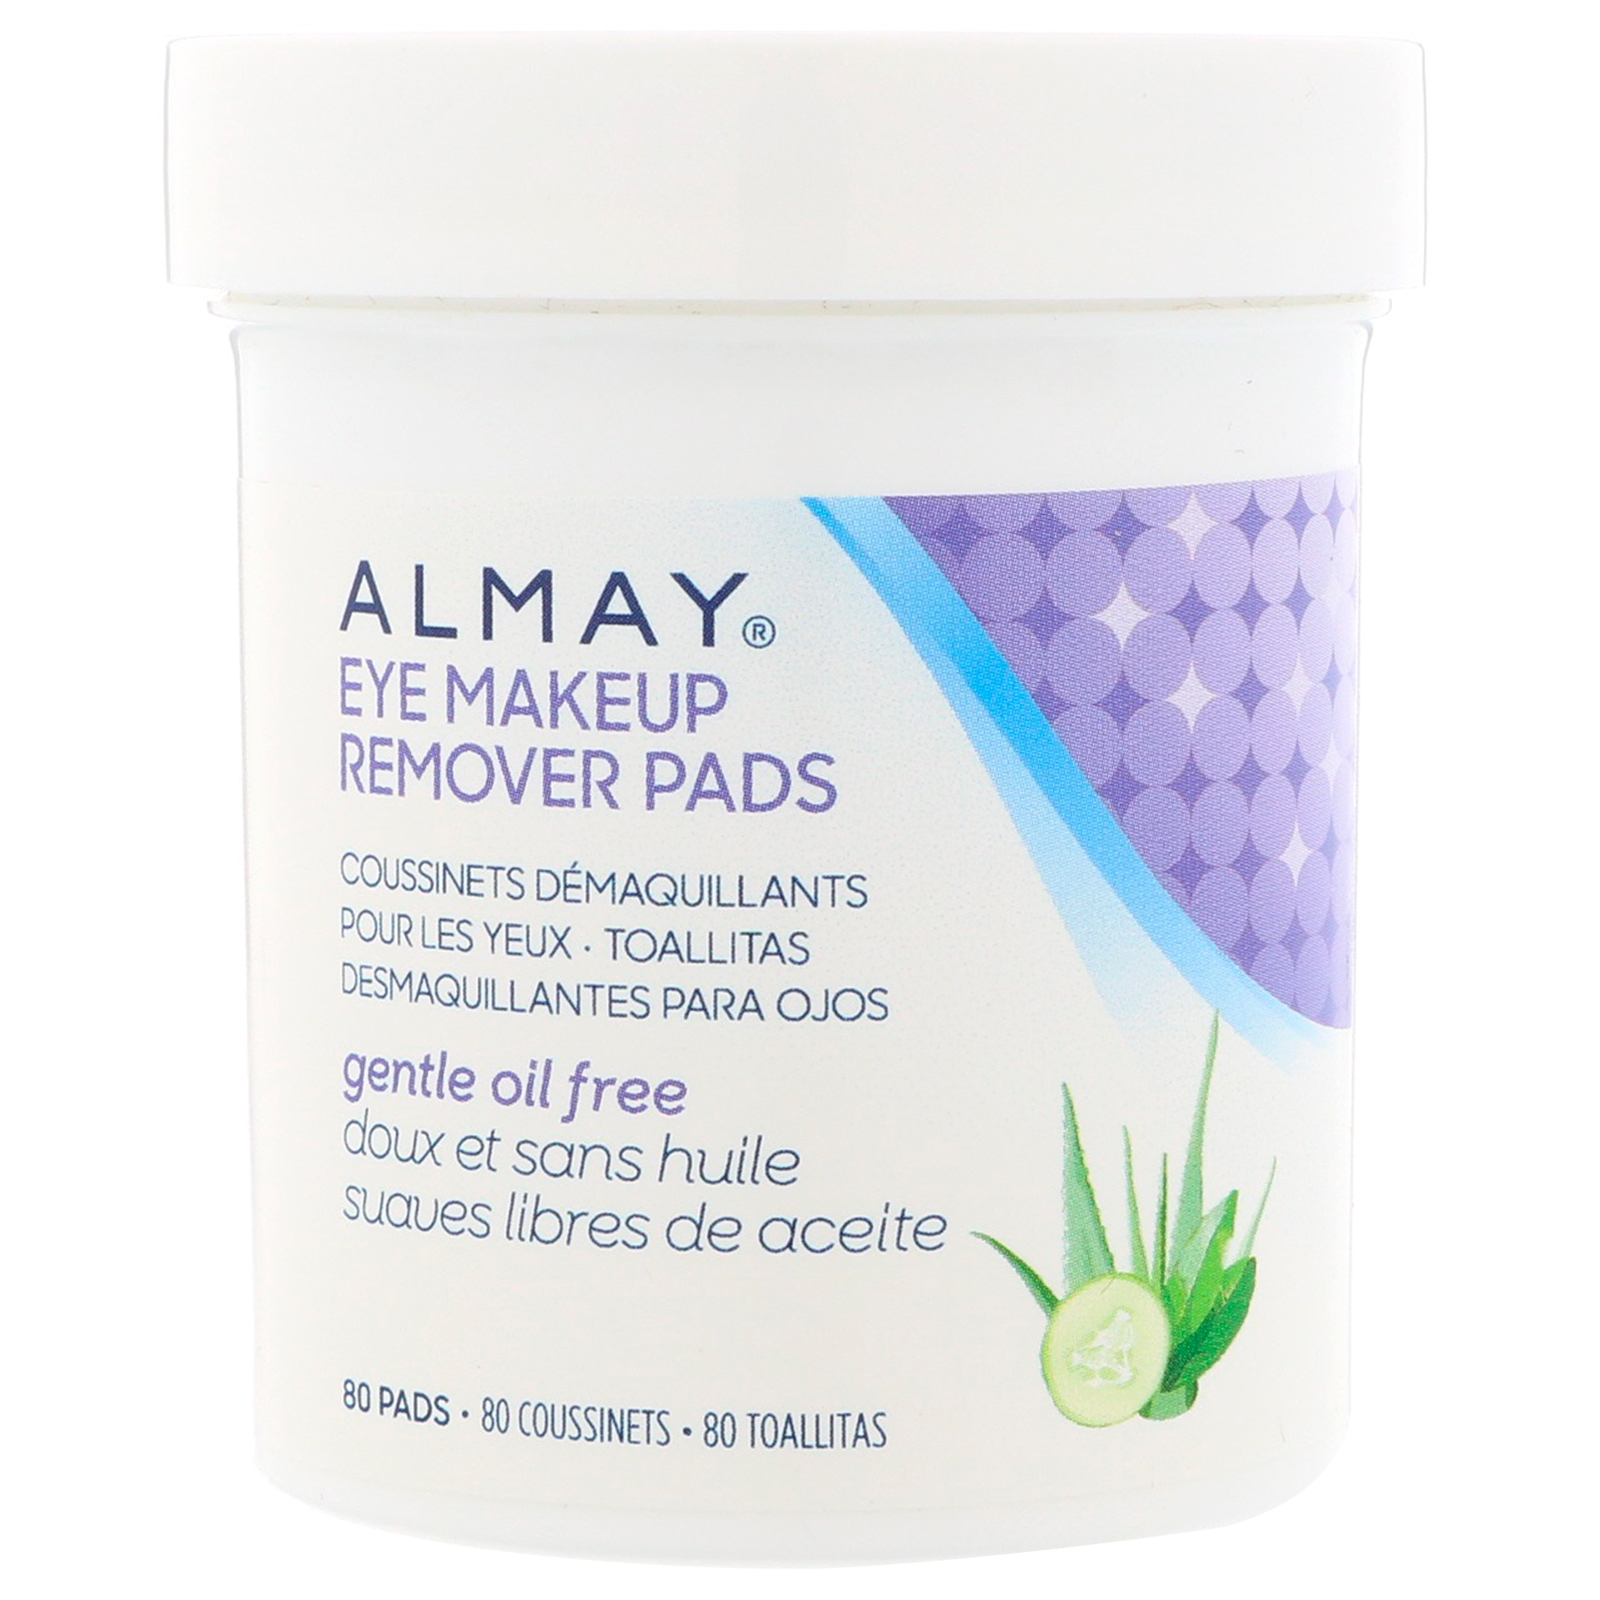 Almay Eye Makeup Remover Pads Gentle Oil Free 80 Pads Iherb